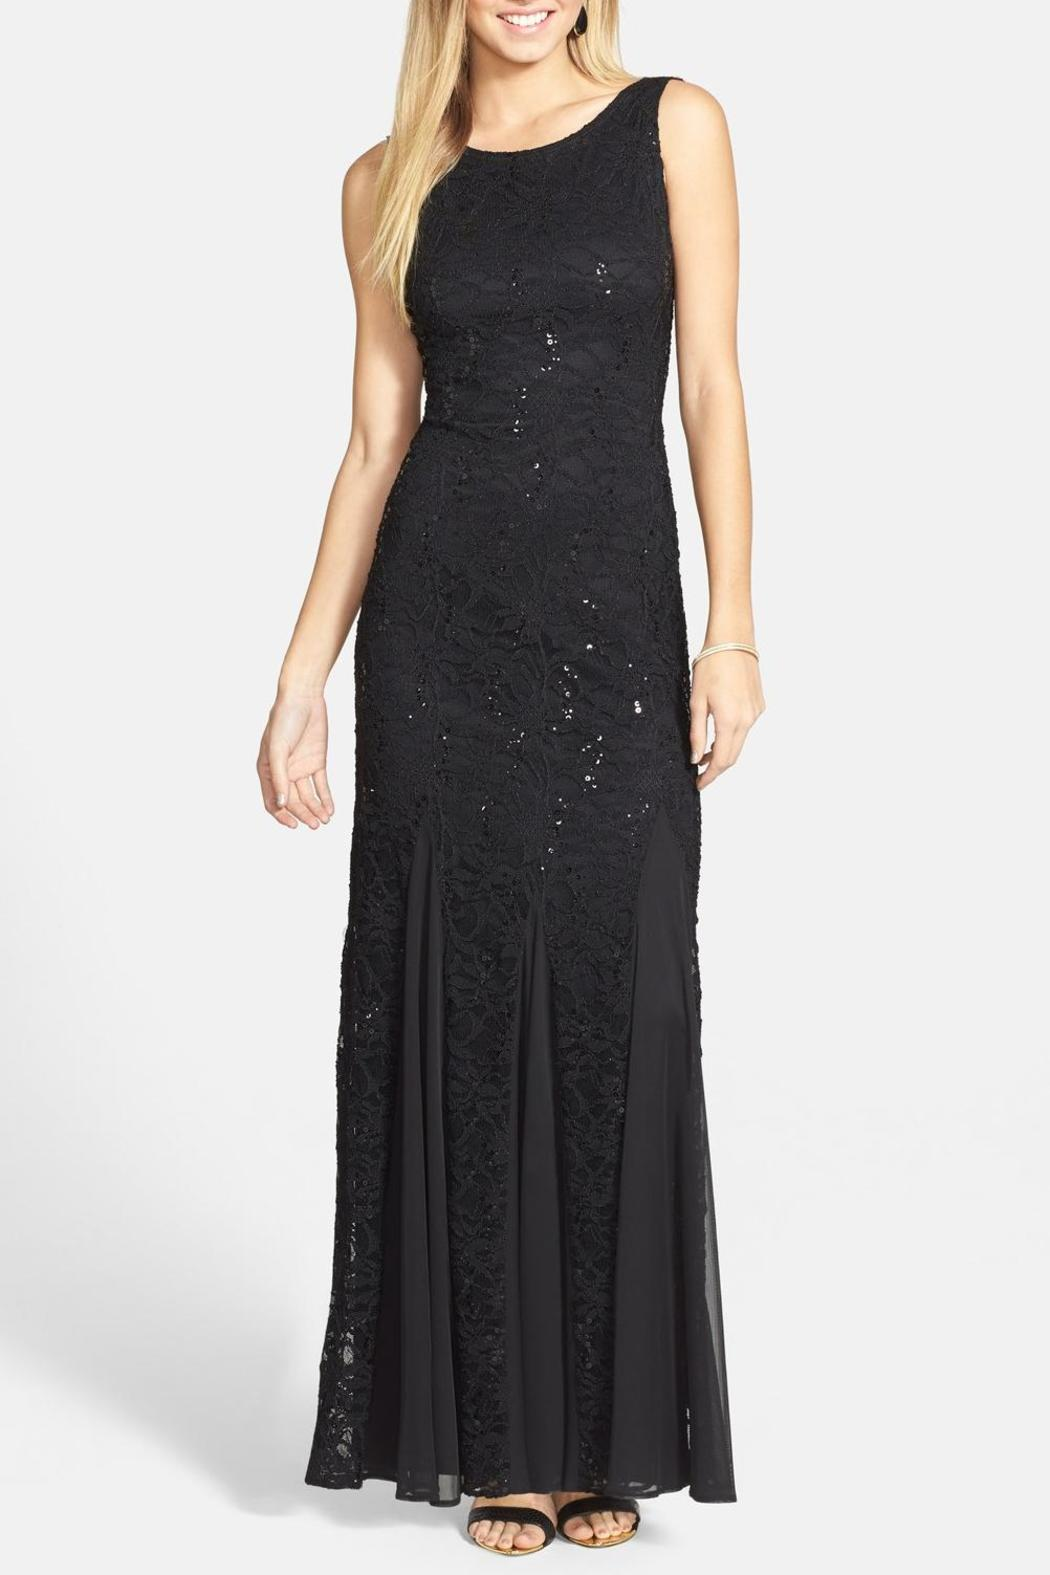 keep it simply stylish lace beaded back dress from